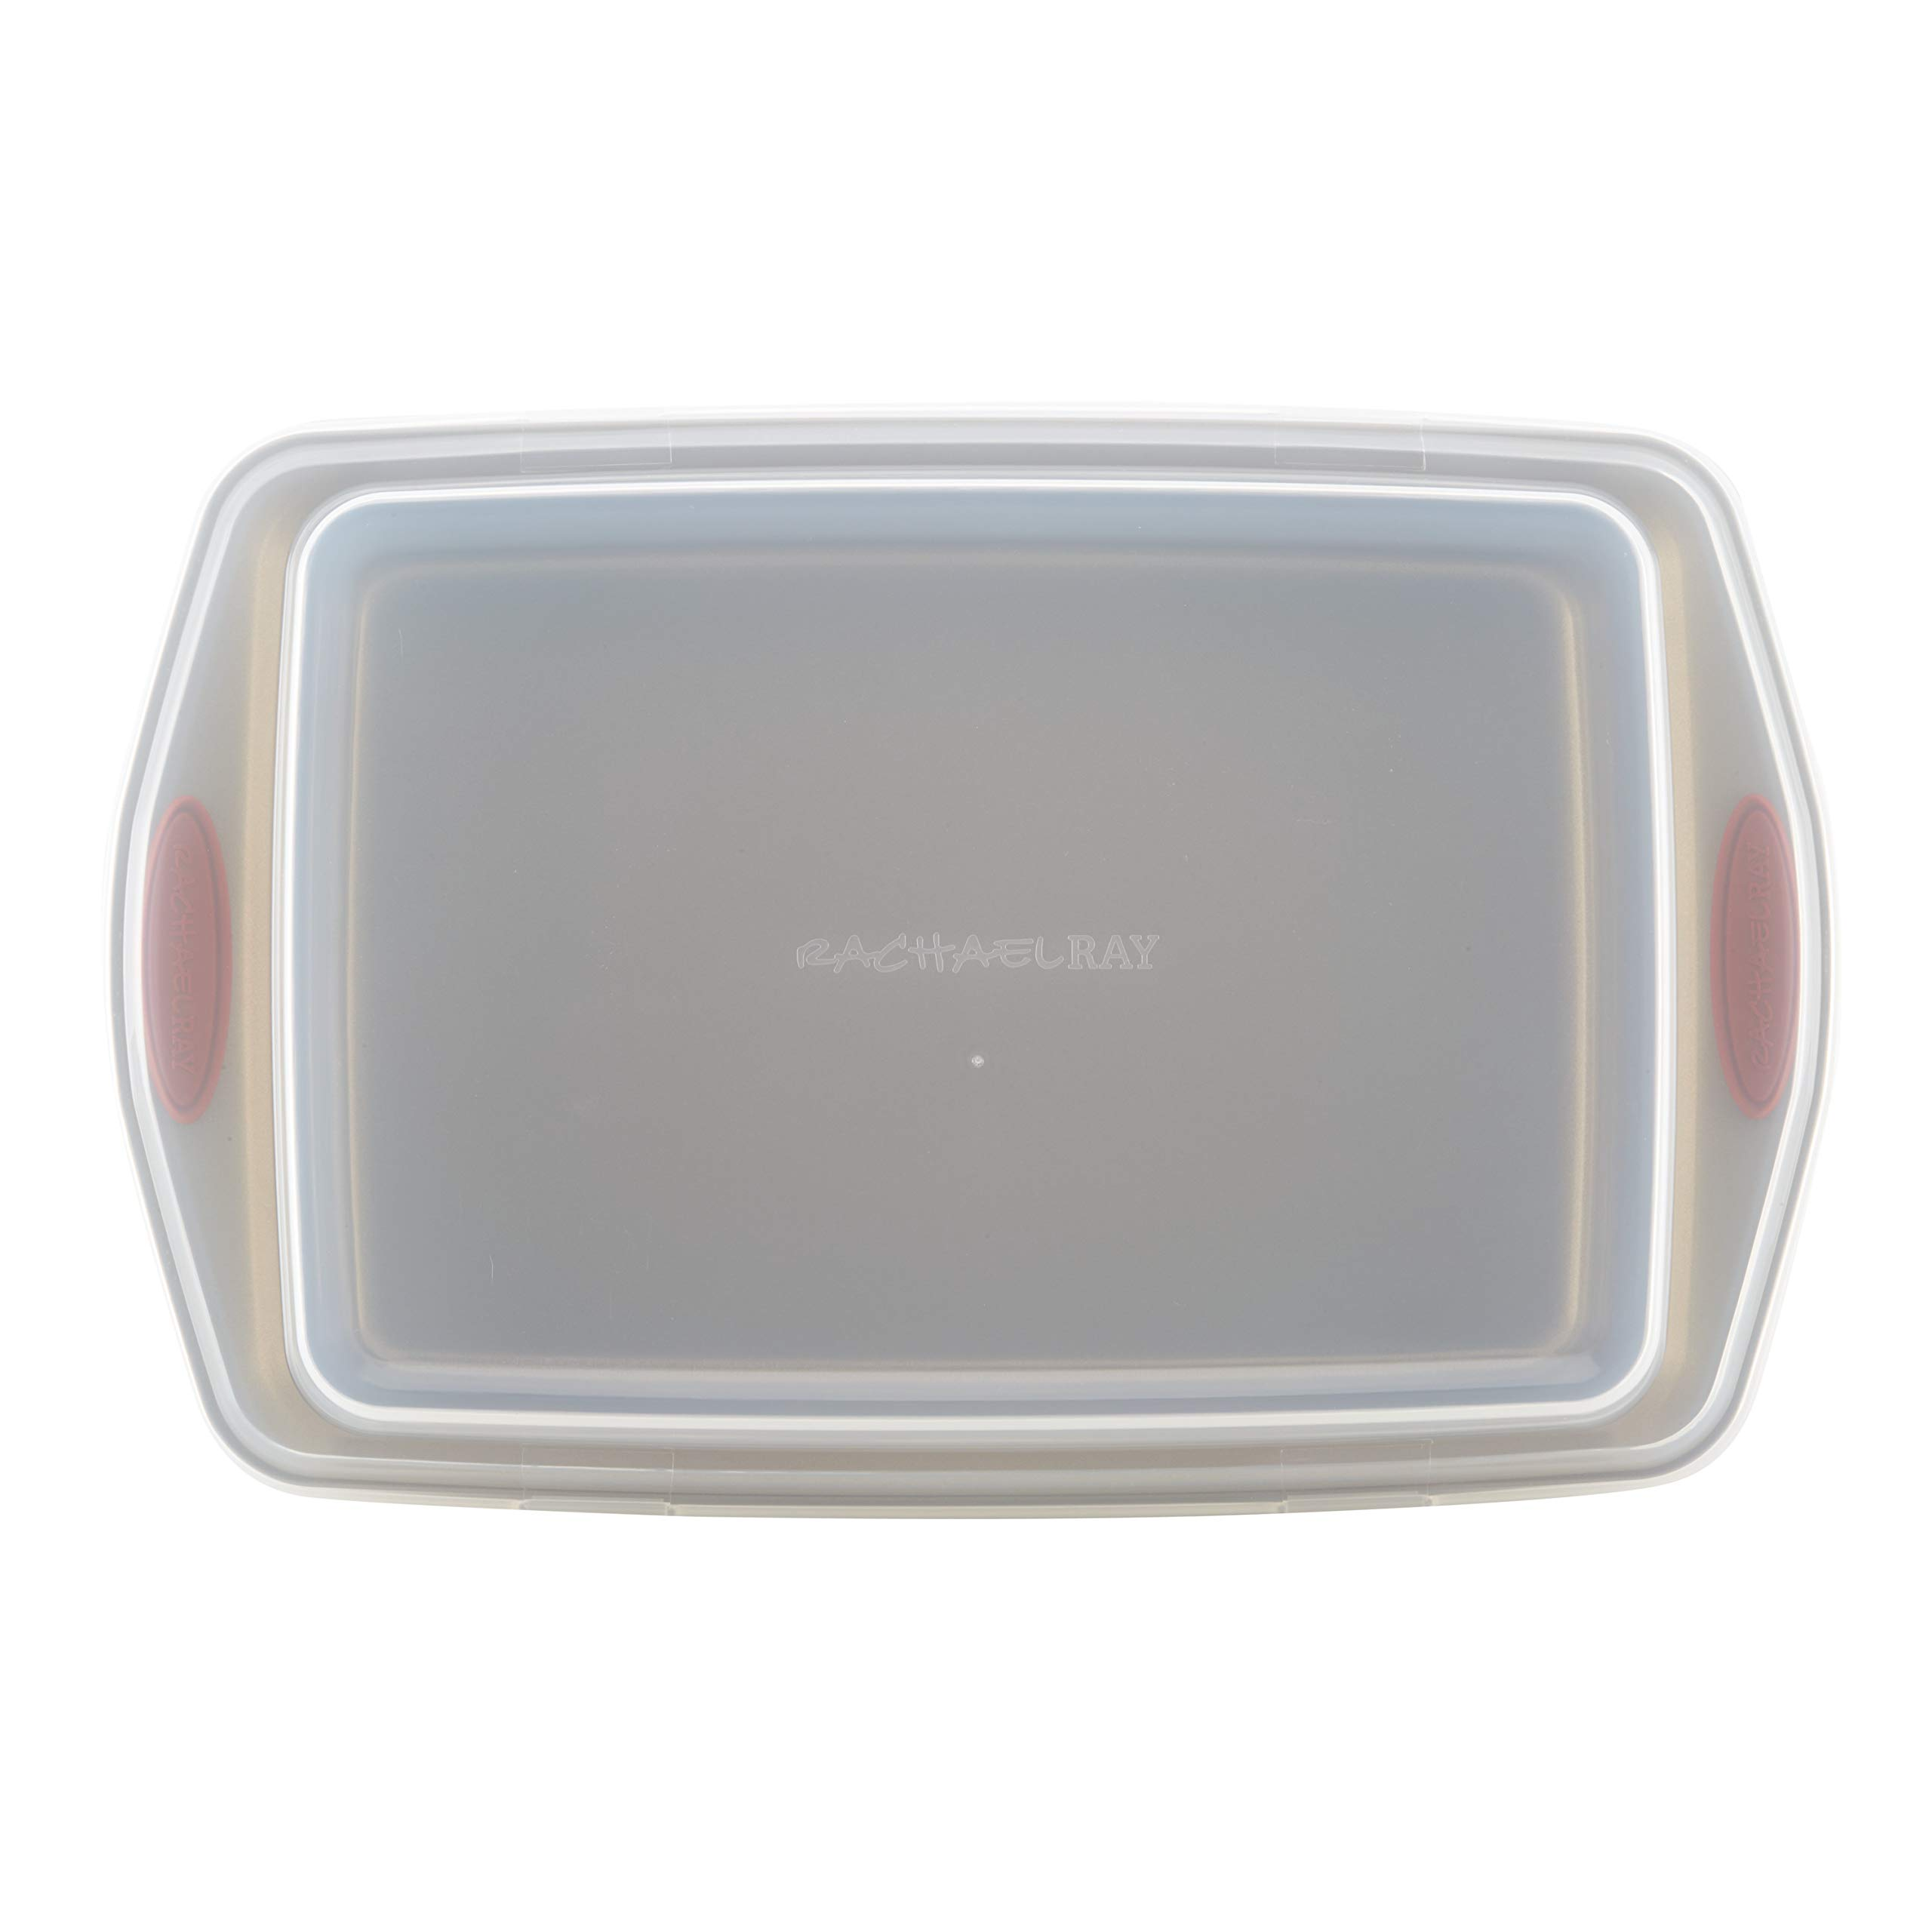 Rachael Ray Cucina Nonstick Bakeware 9-Inch by 13-Inch Covered Rectangle Cake Pan, Latte Brown with Cranberry Red Handles by Rachael Ray (Image #3)